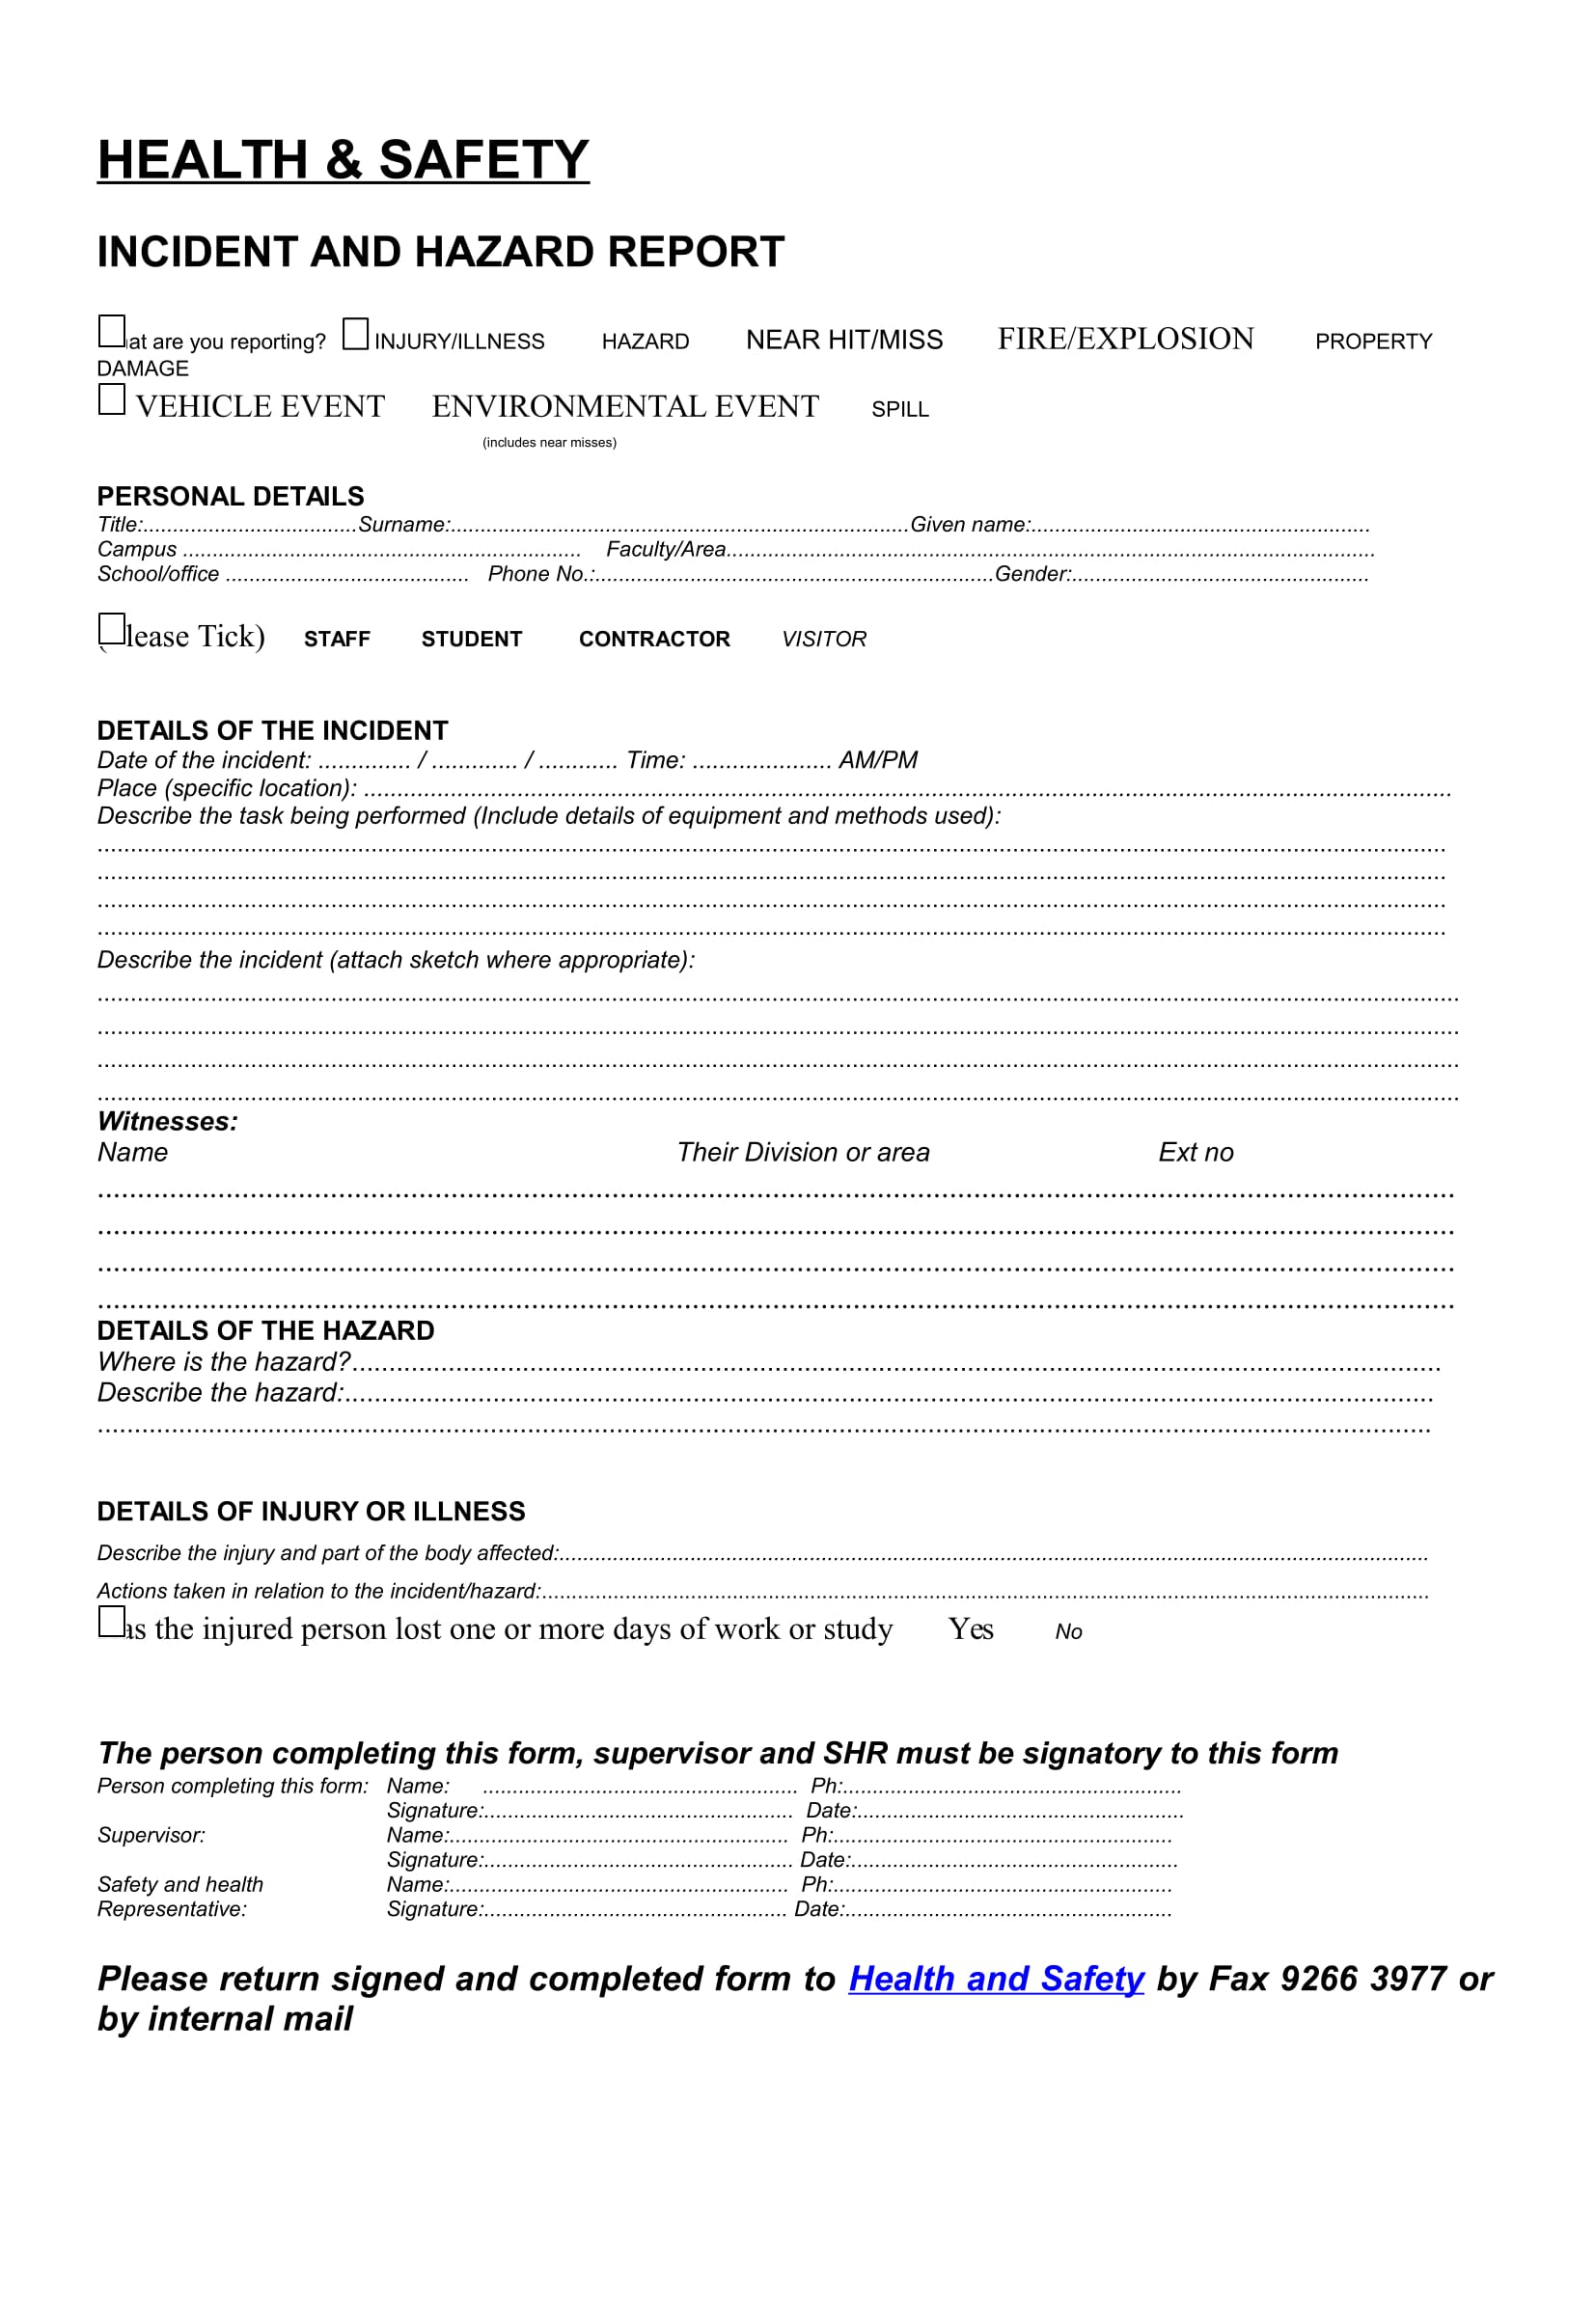 incident and hazard report form 1